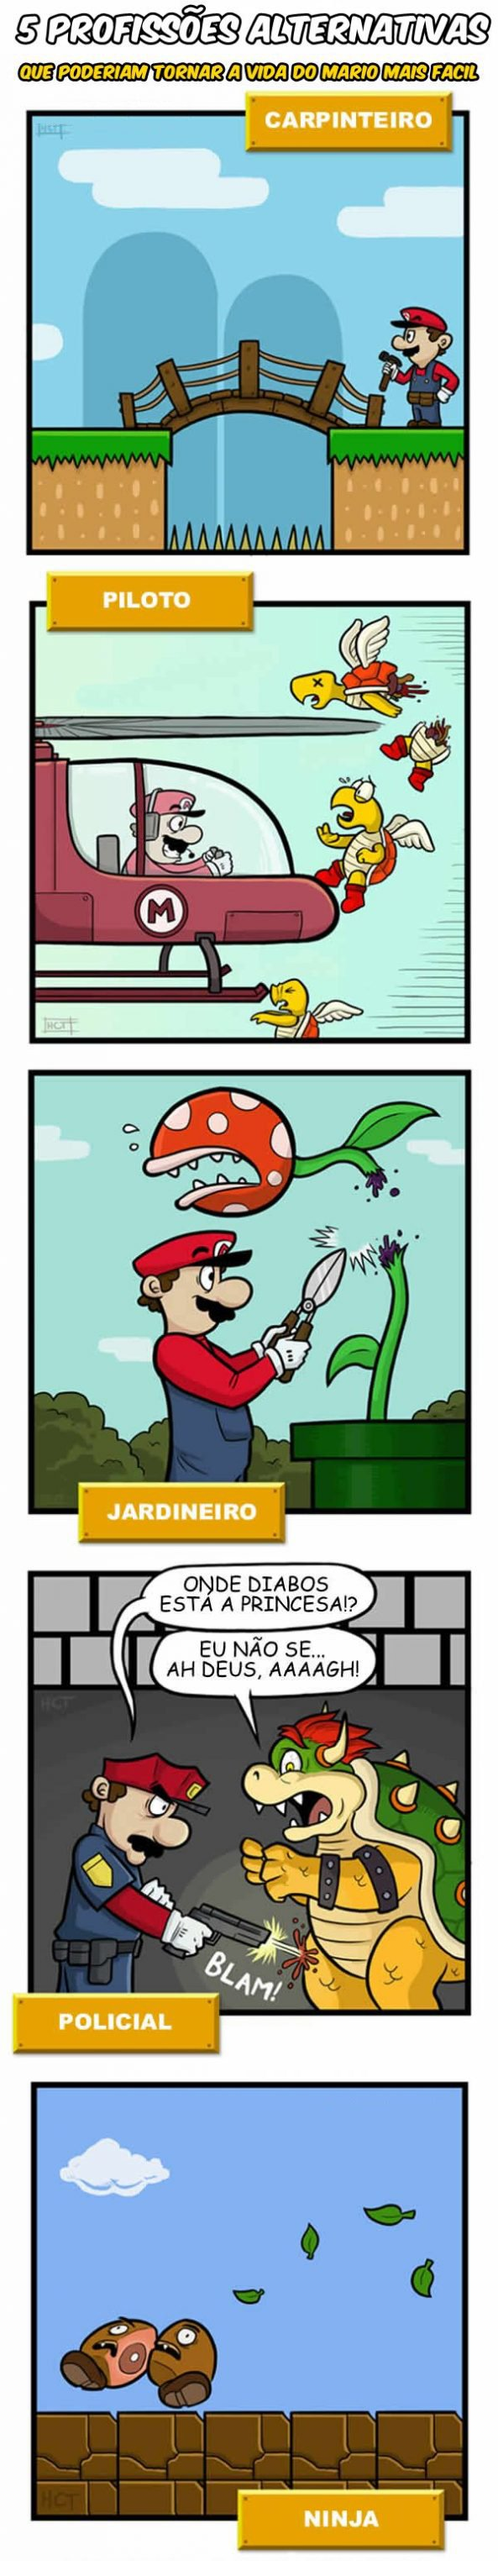 5 profissoes alternativas que poderiam tonar a vida do Mario mais facil